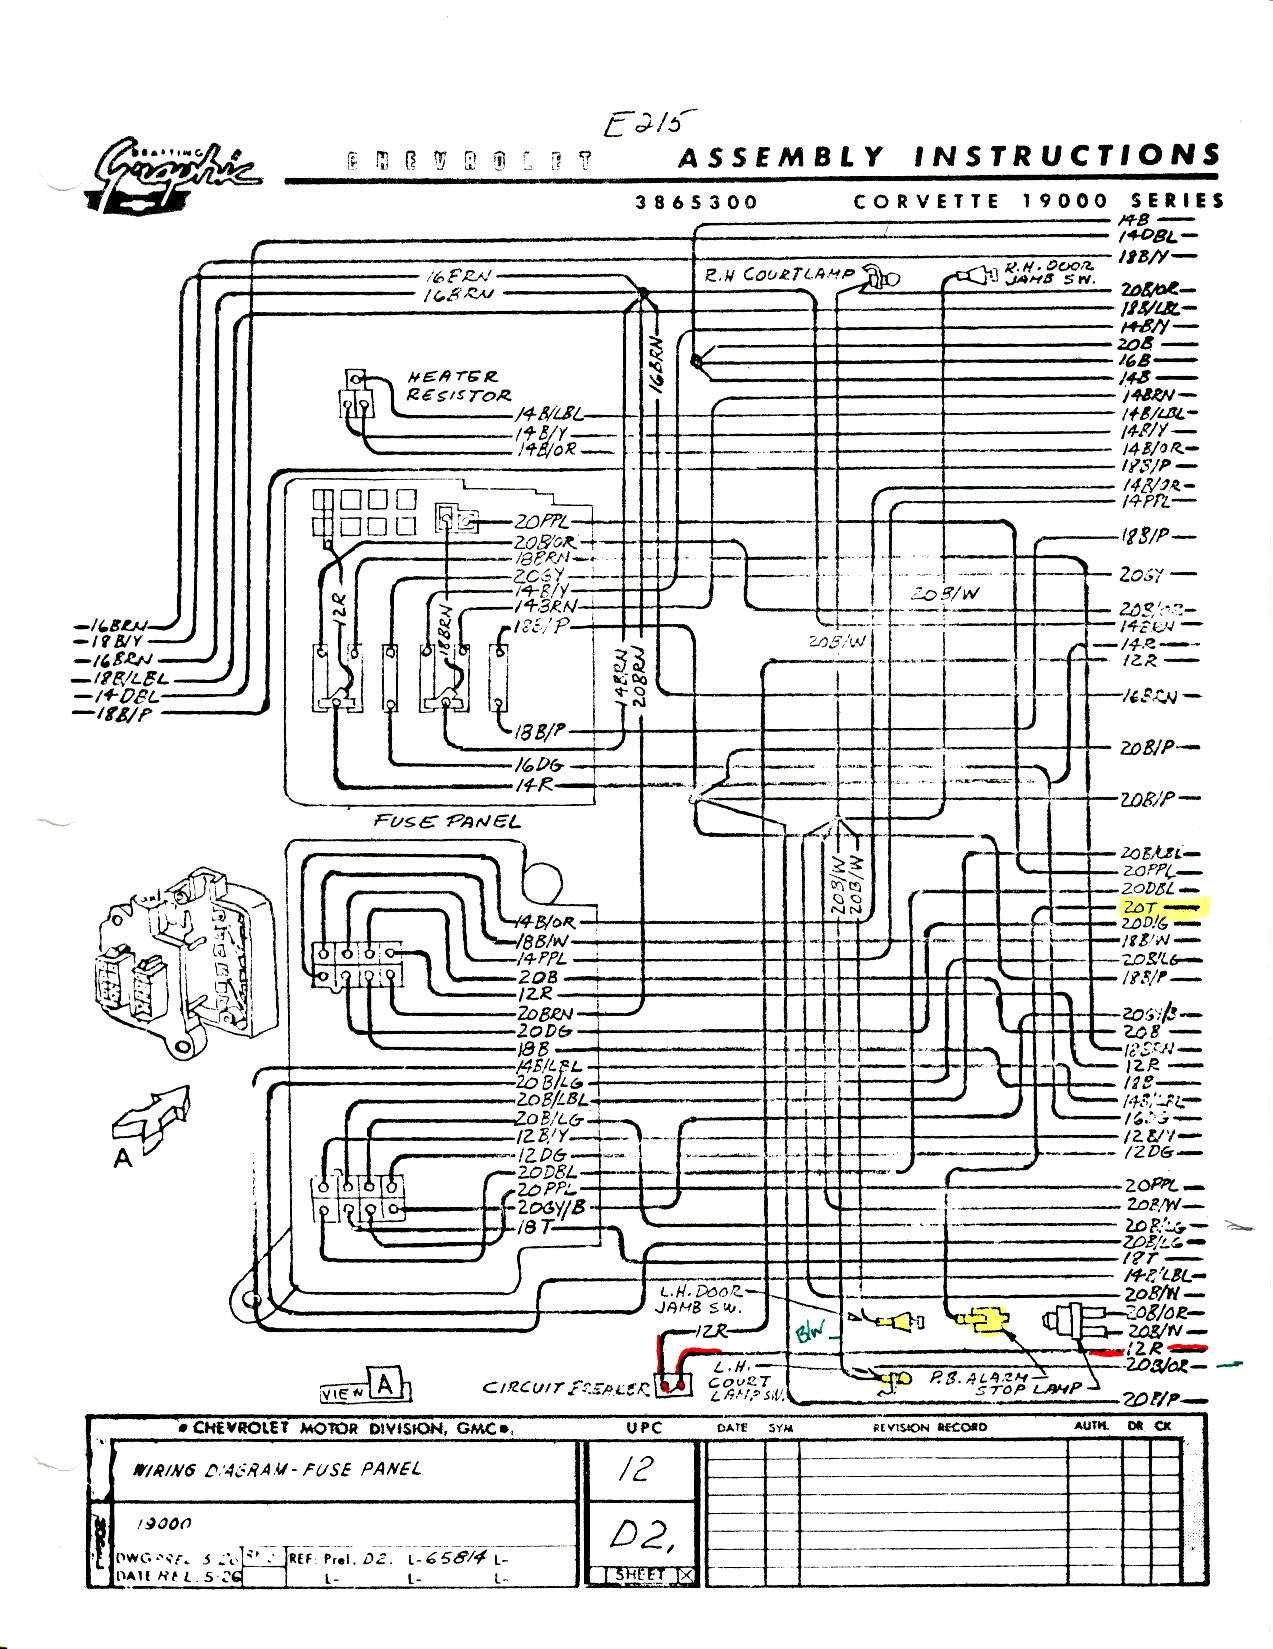 hight resolution of c4 corvette wiring harness diagram wiring diagram note c4 corvette wiring harness c4 corvette wiring harness